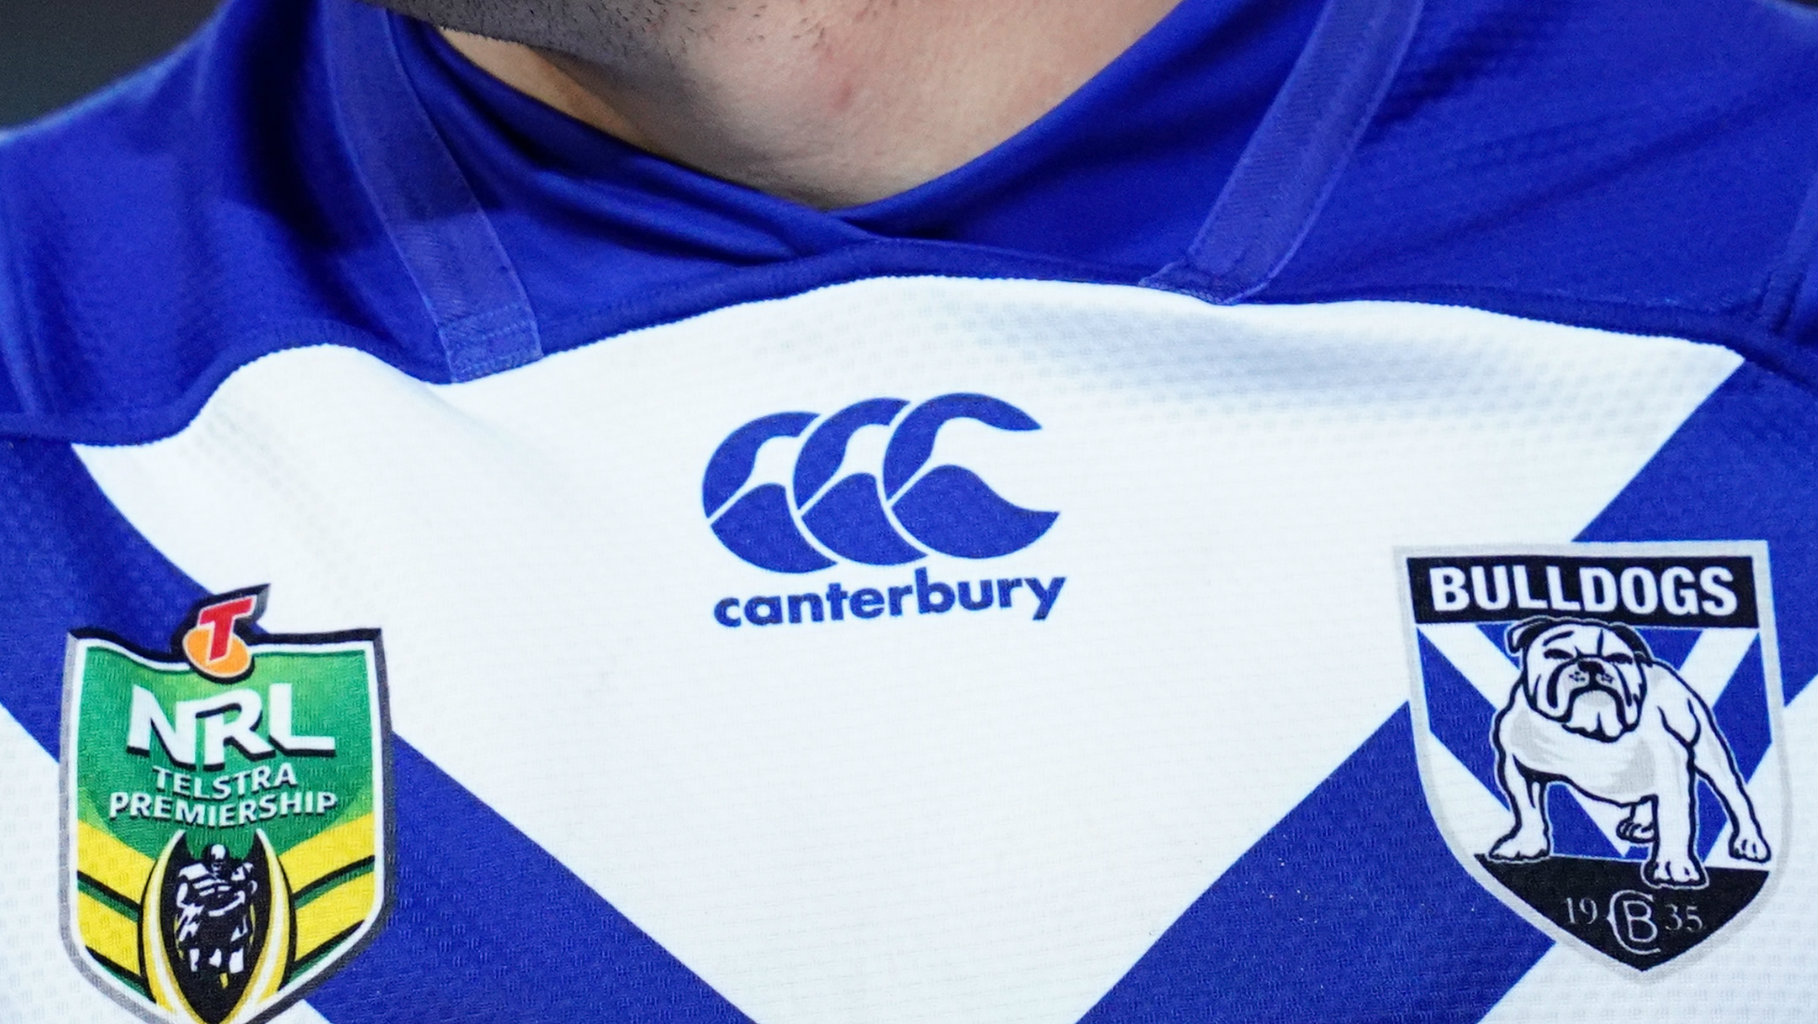 Canterbury 'are their own worst enemies' amid boardroom tension, says Paul Kent